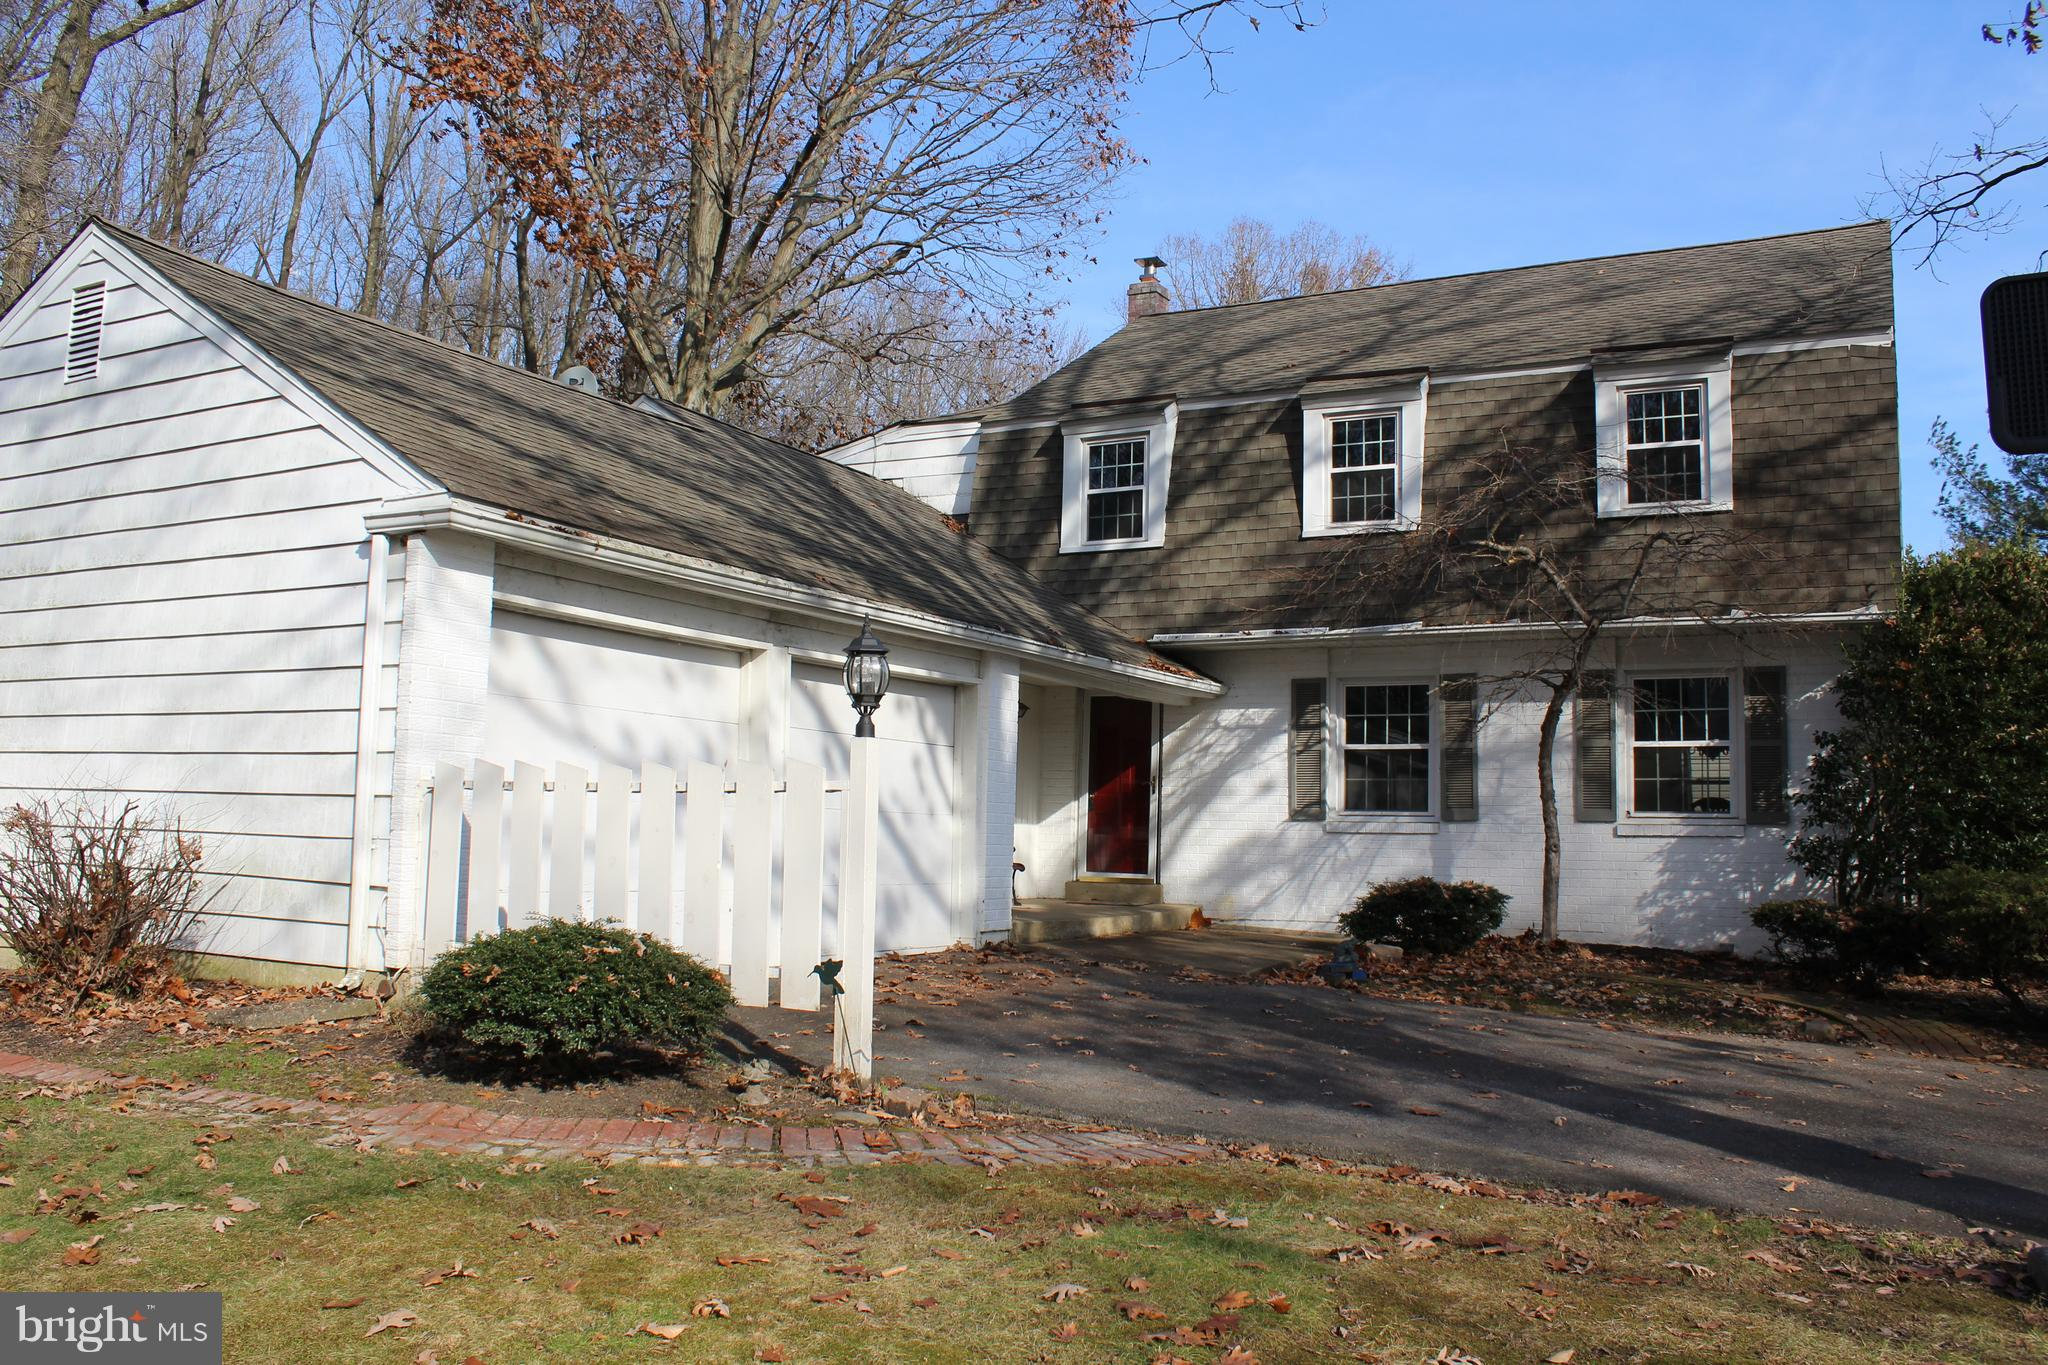 This price is unheard of for a 2,575 sq ft, 5 bedroom, 3 full bath colonial with wooded rear lot (li